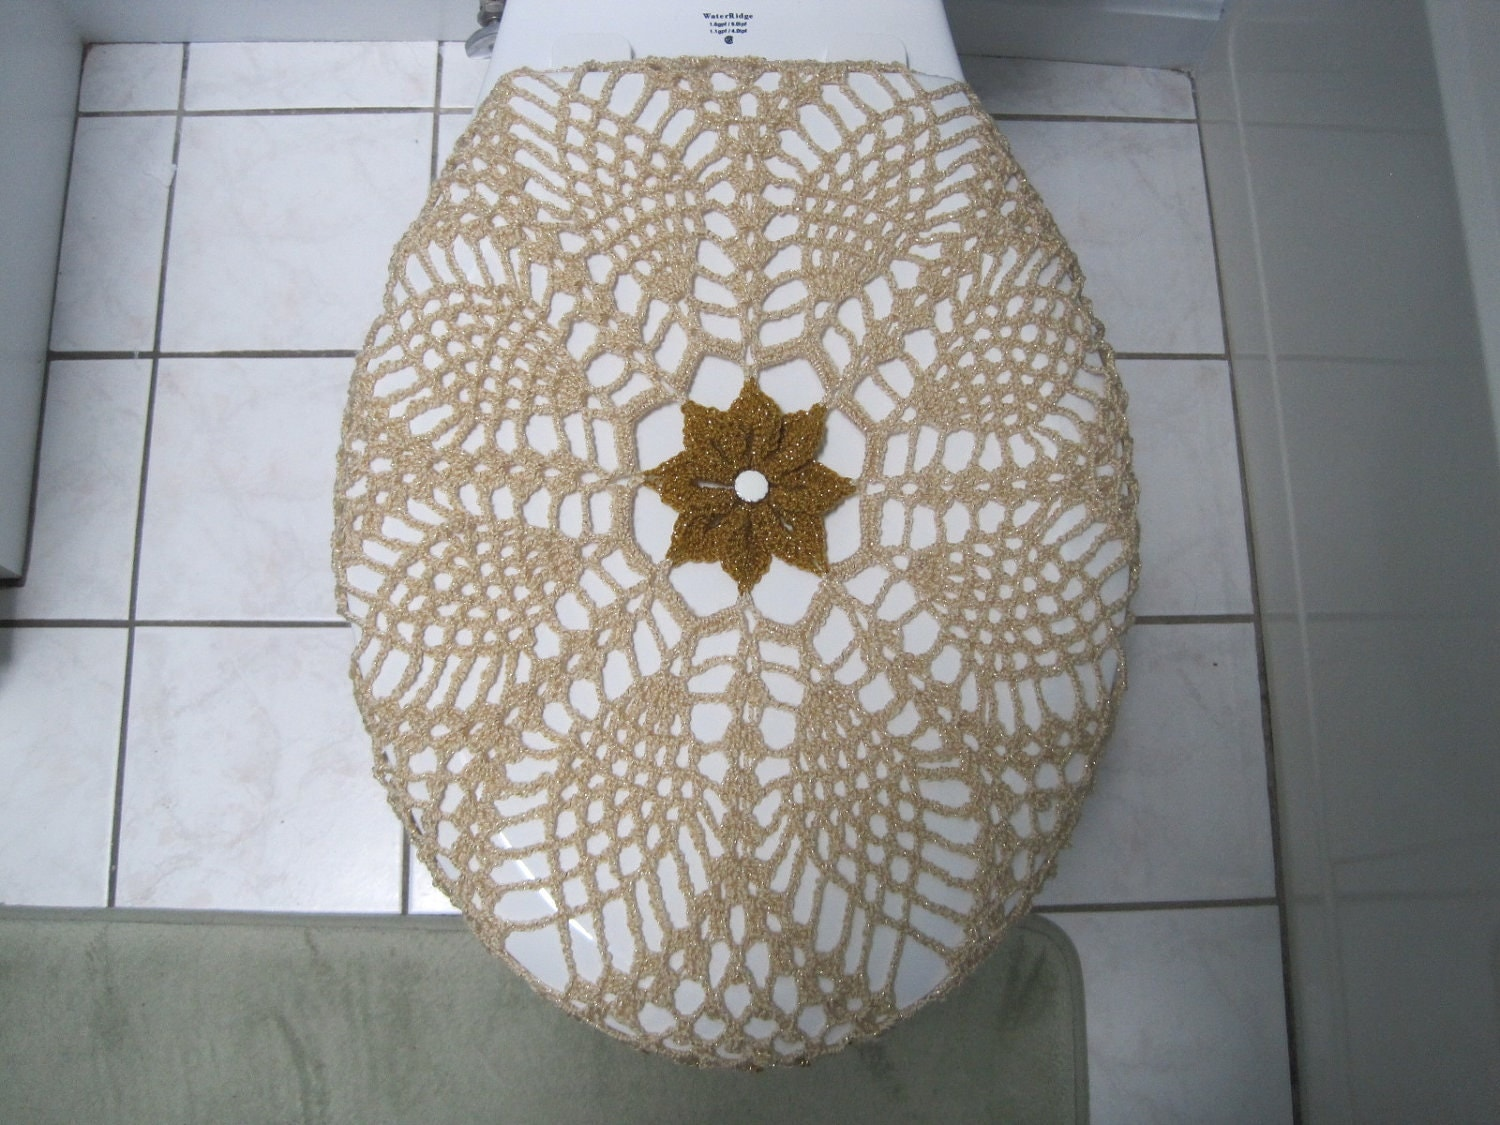 Crochet Toilet Seat Cover Or Crochet Toilet Tank Lid Cover